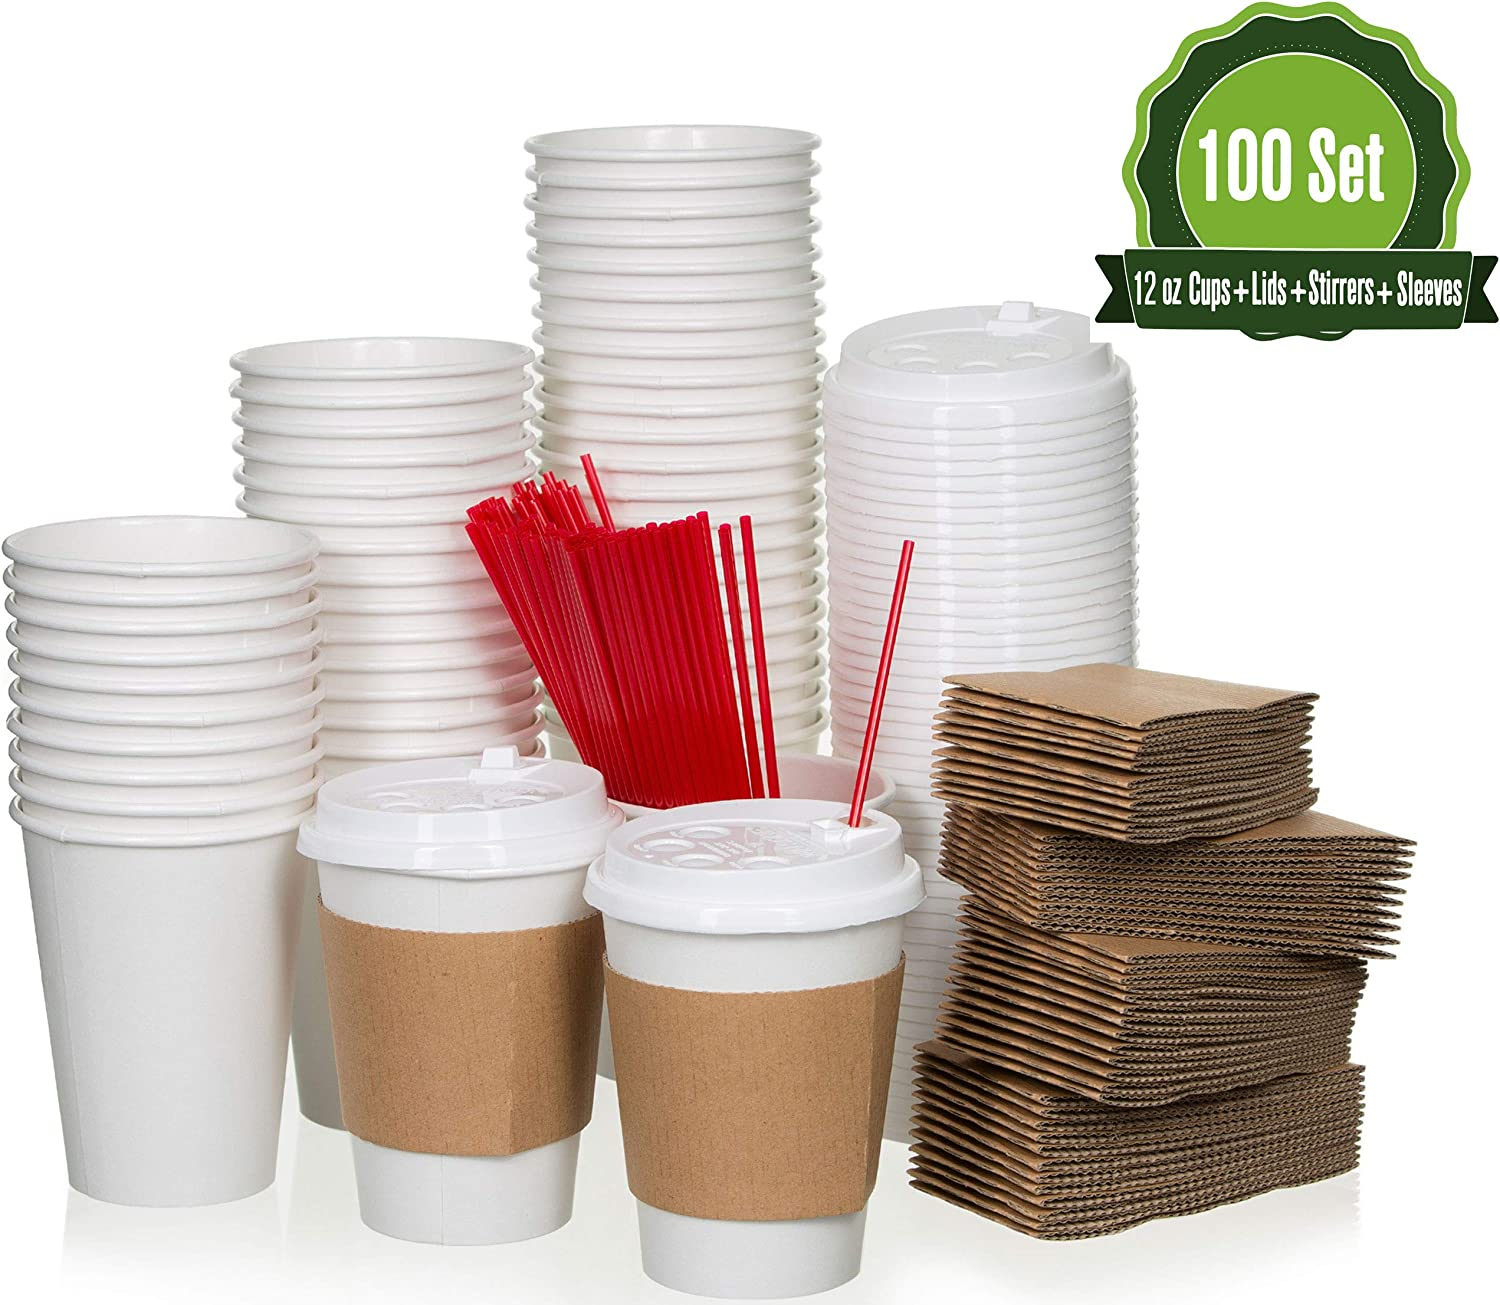 Safeware 12 oz [ 100 Set] Togo Disposable White Paper Coffee Cups with Lids, Sleeves, and Stirrers | Hot Beverages | Expresso | Tea | Coffee | Latte | Hot Chocolate